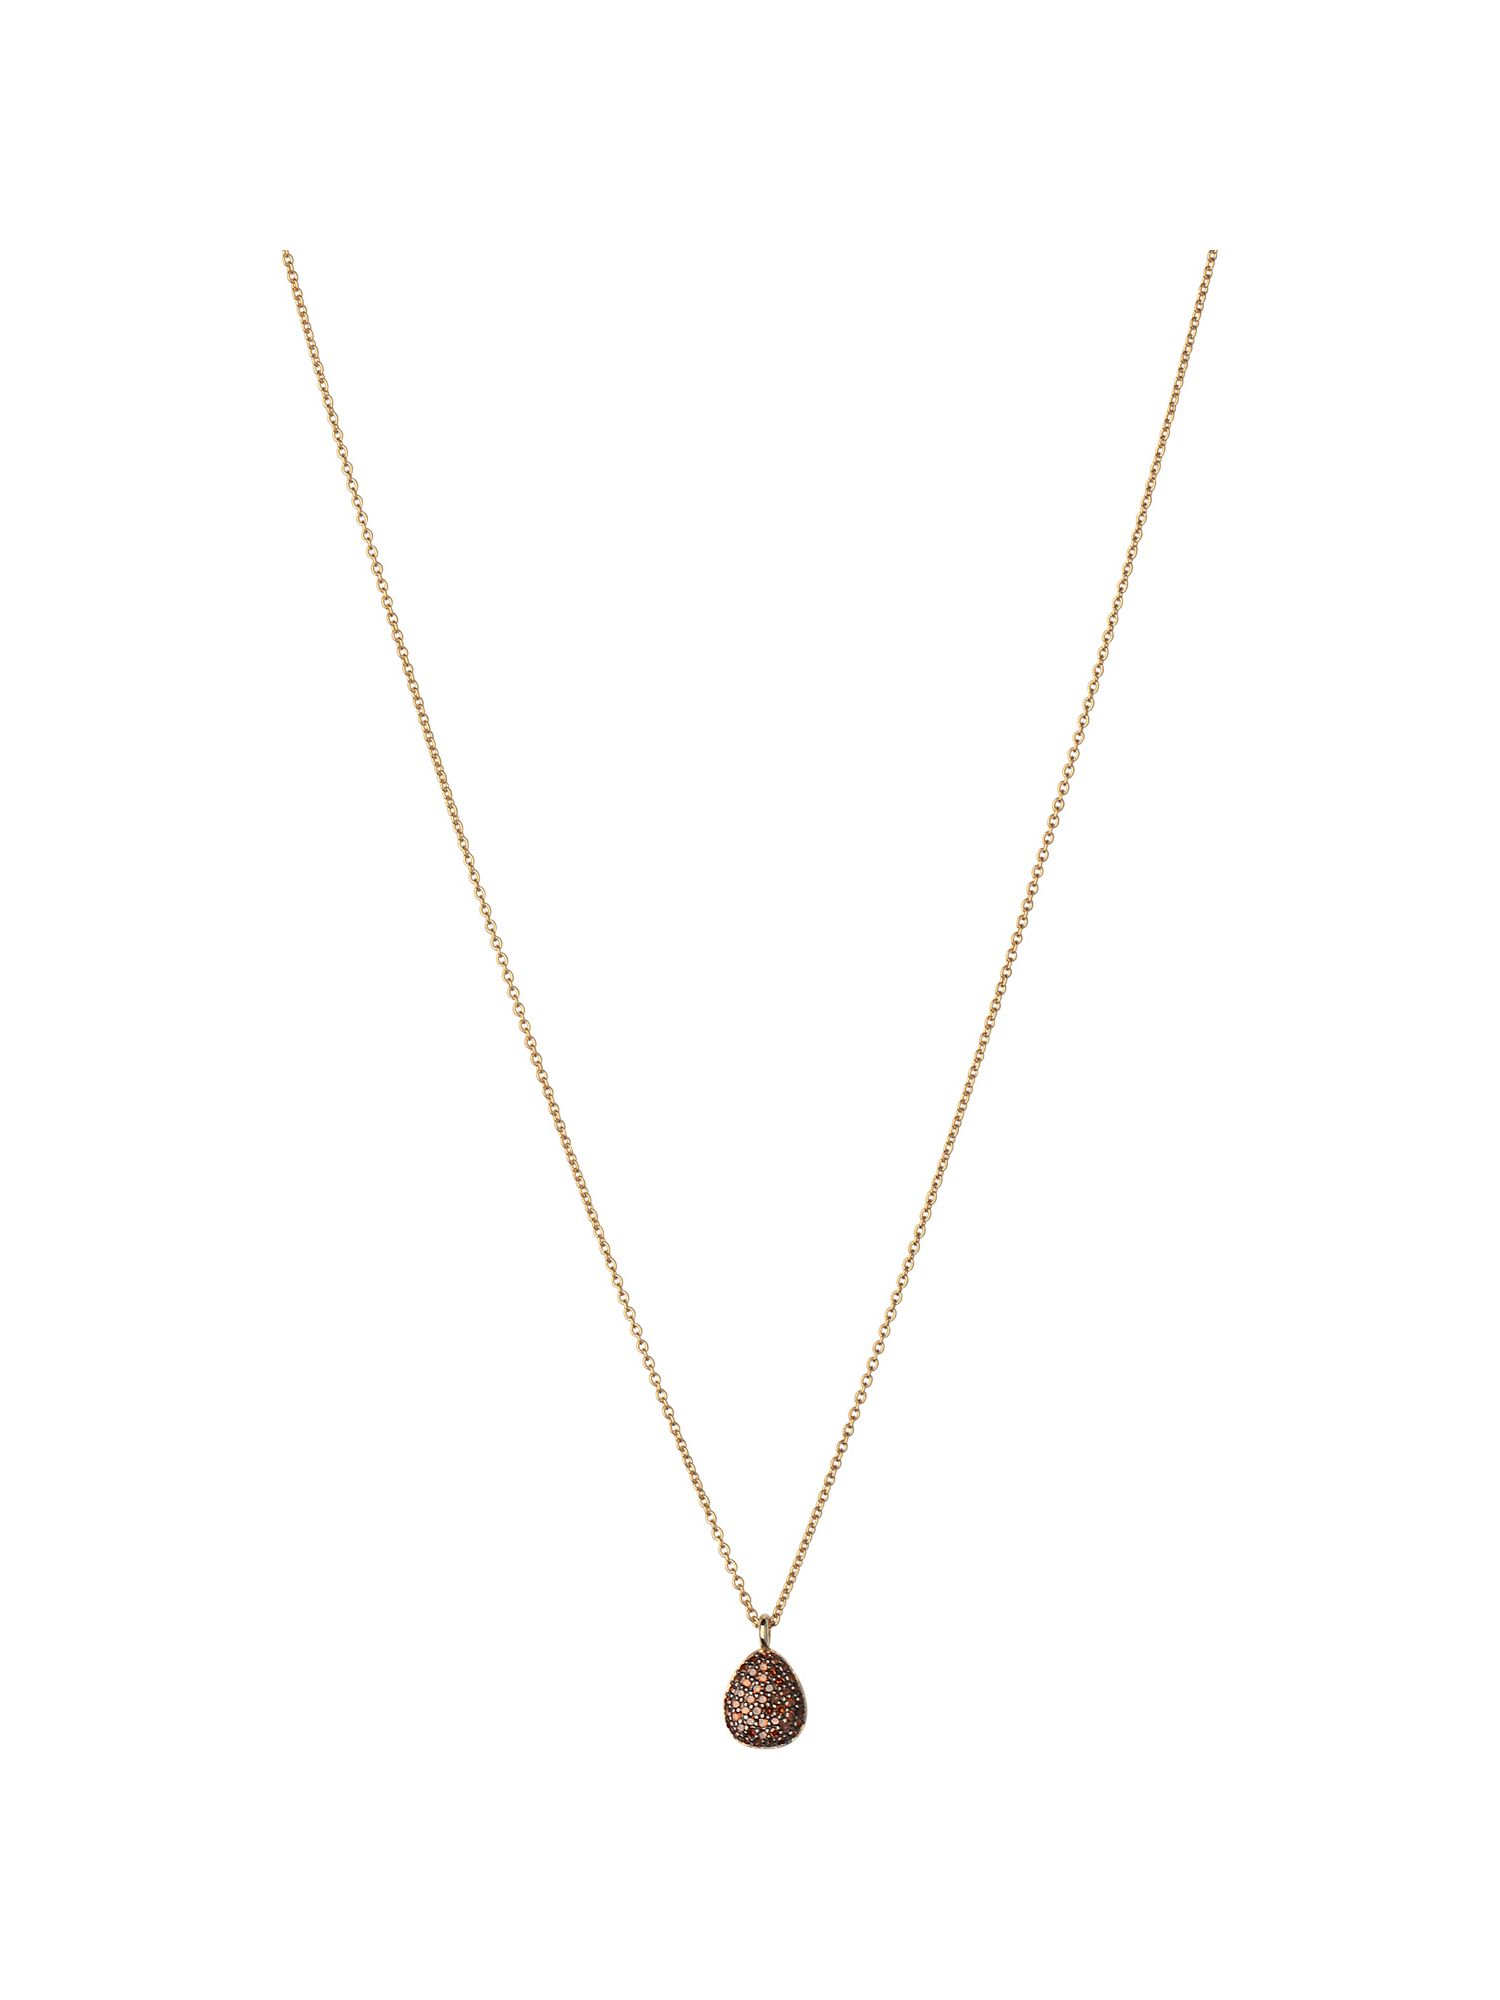 Links of London Hope 18ct Gold & Cognac Diamond Necklace, N/A